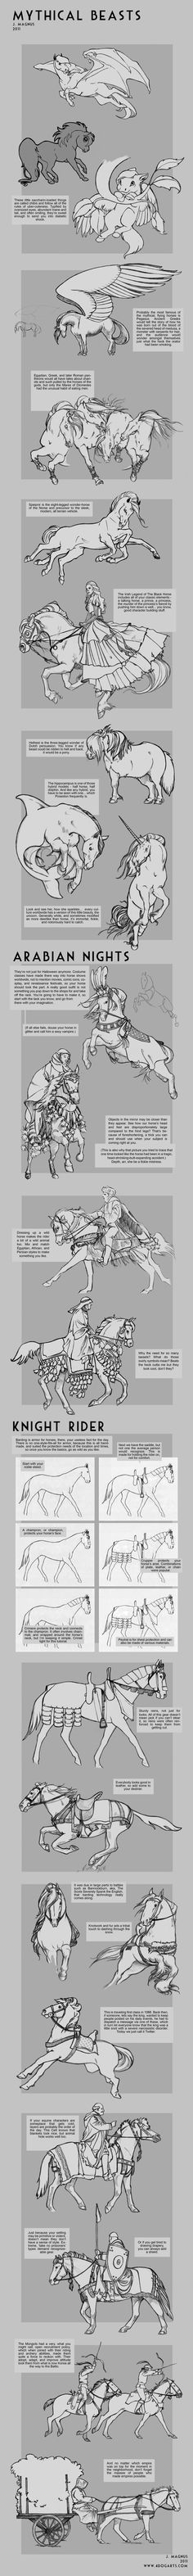 Myth +Costume Horse Tutorial by sketcherjak.deviantart.com on @deviantART